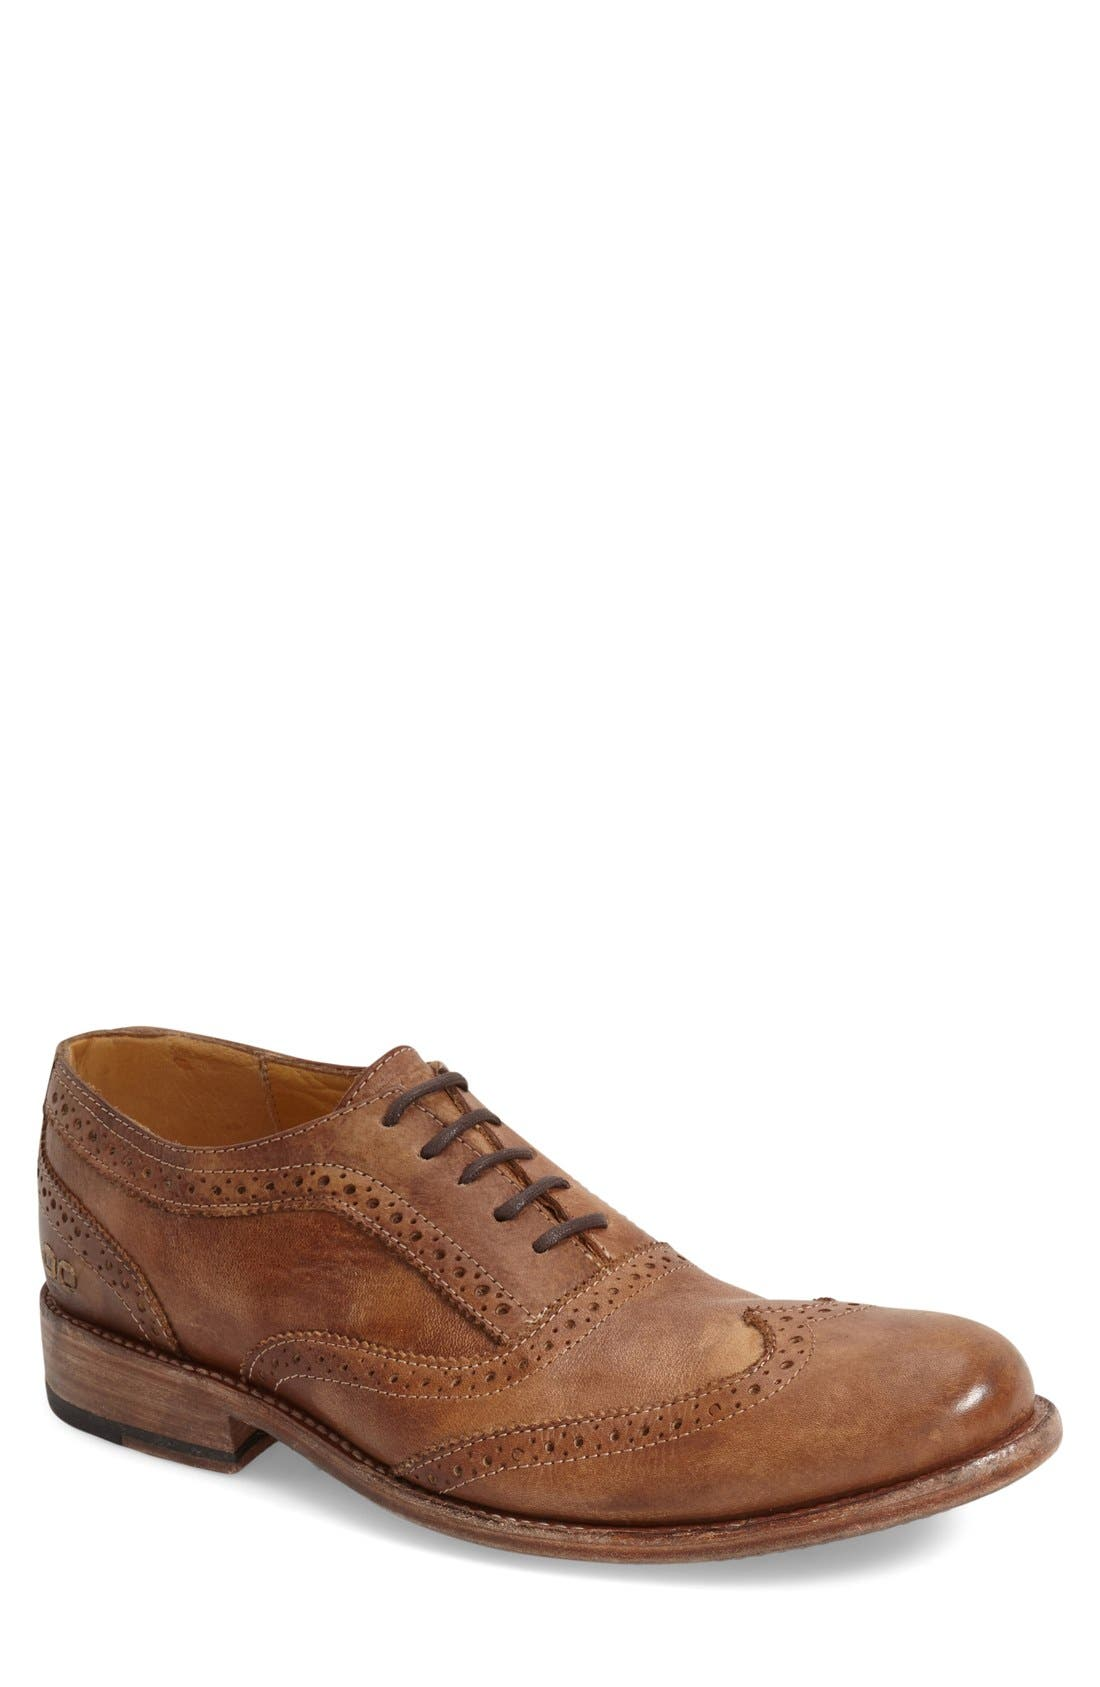 Alternate Image 1 Selected - Bed Stu 'Corsico' Wingtip Oxford (Men)